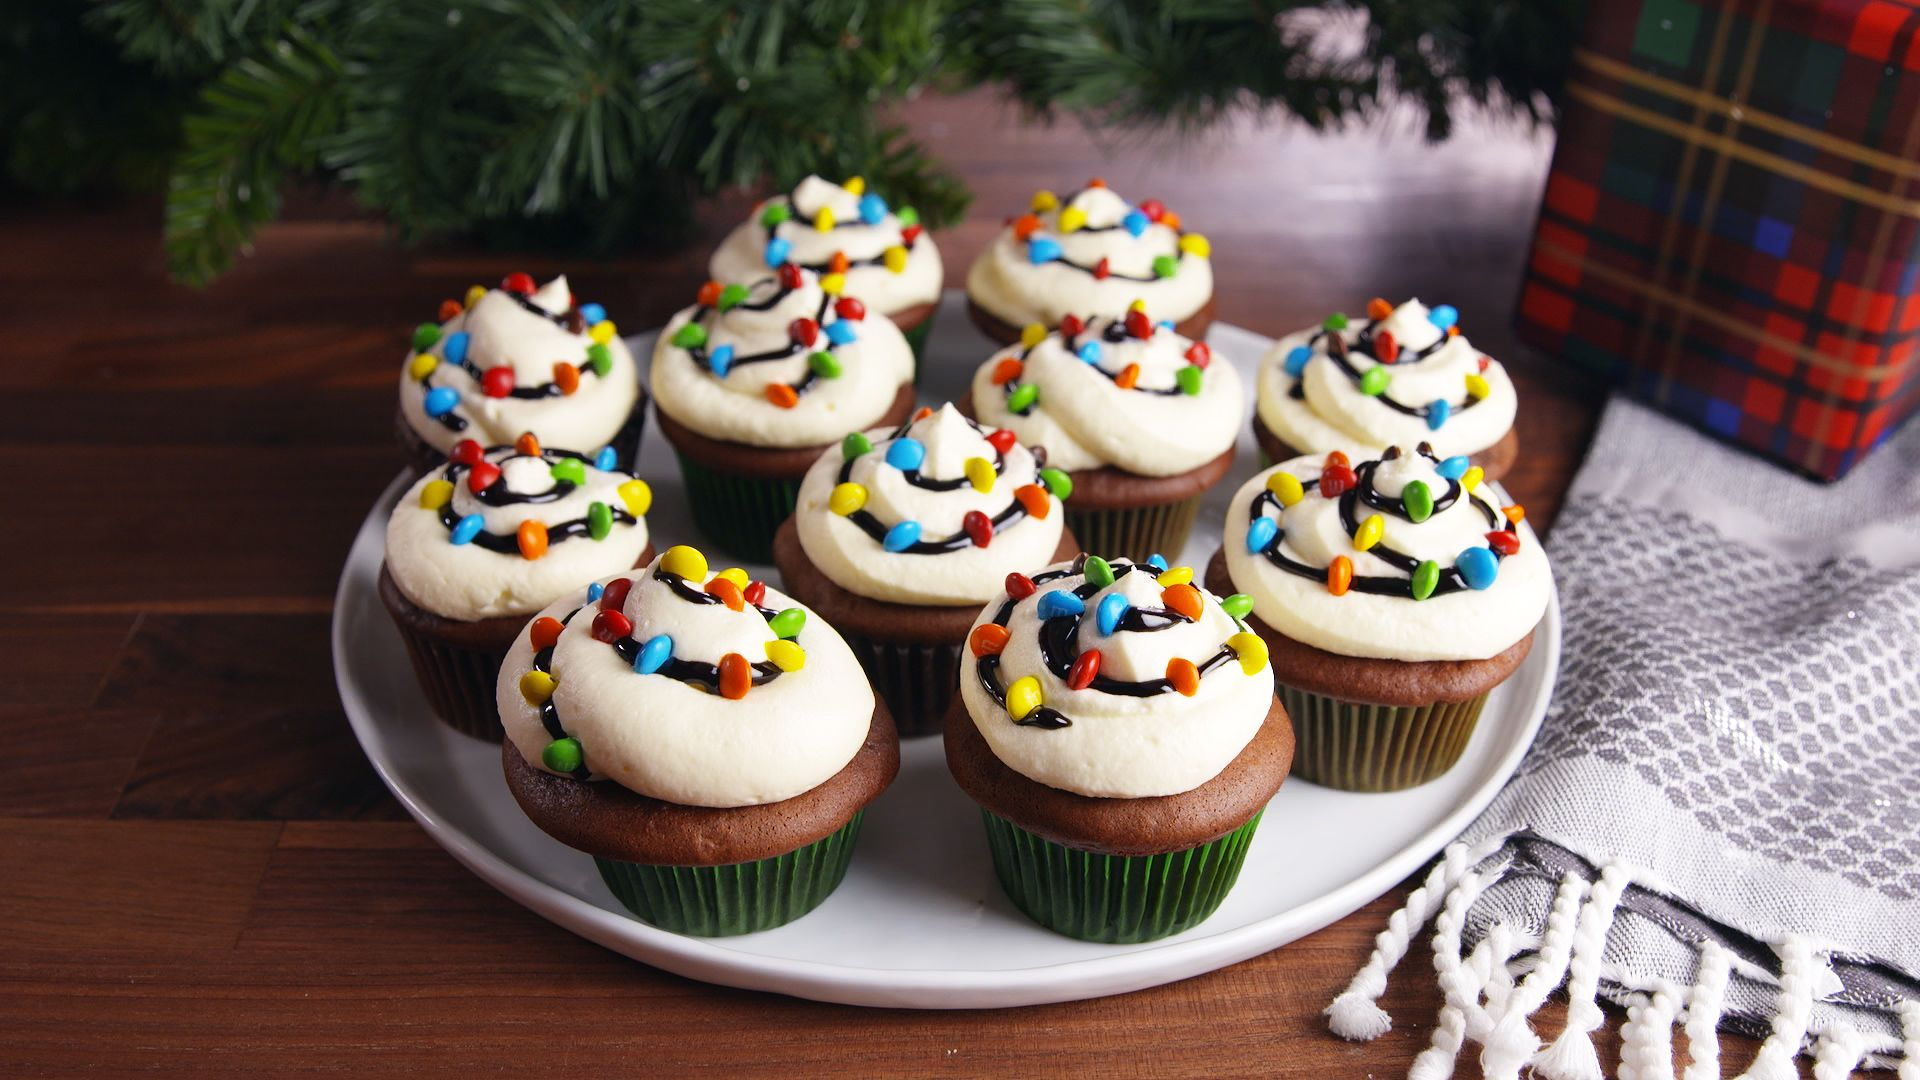 26 Christmas Cupcakes To Bring To Every Holiday Party This Season